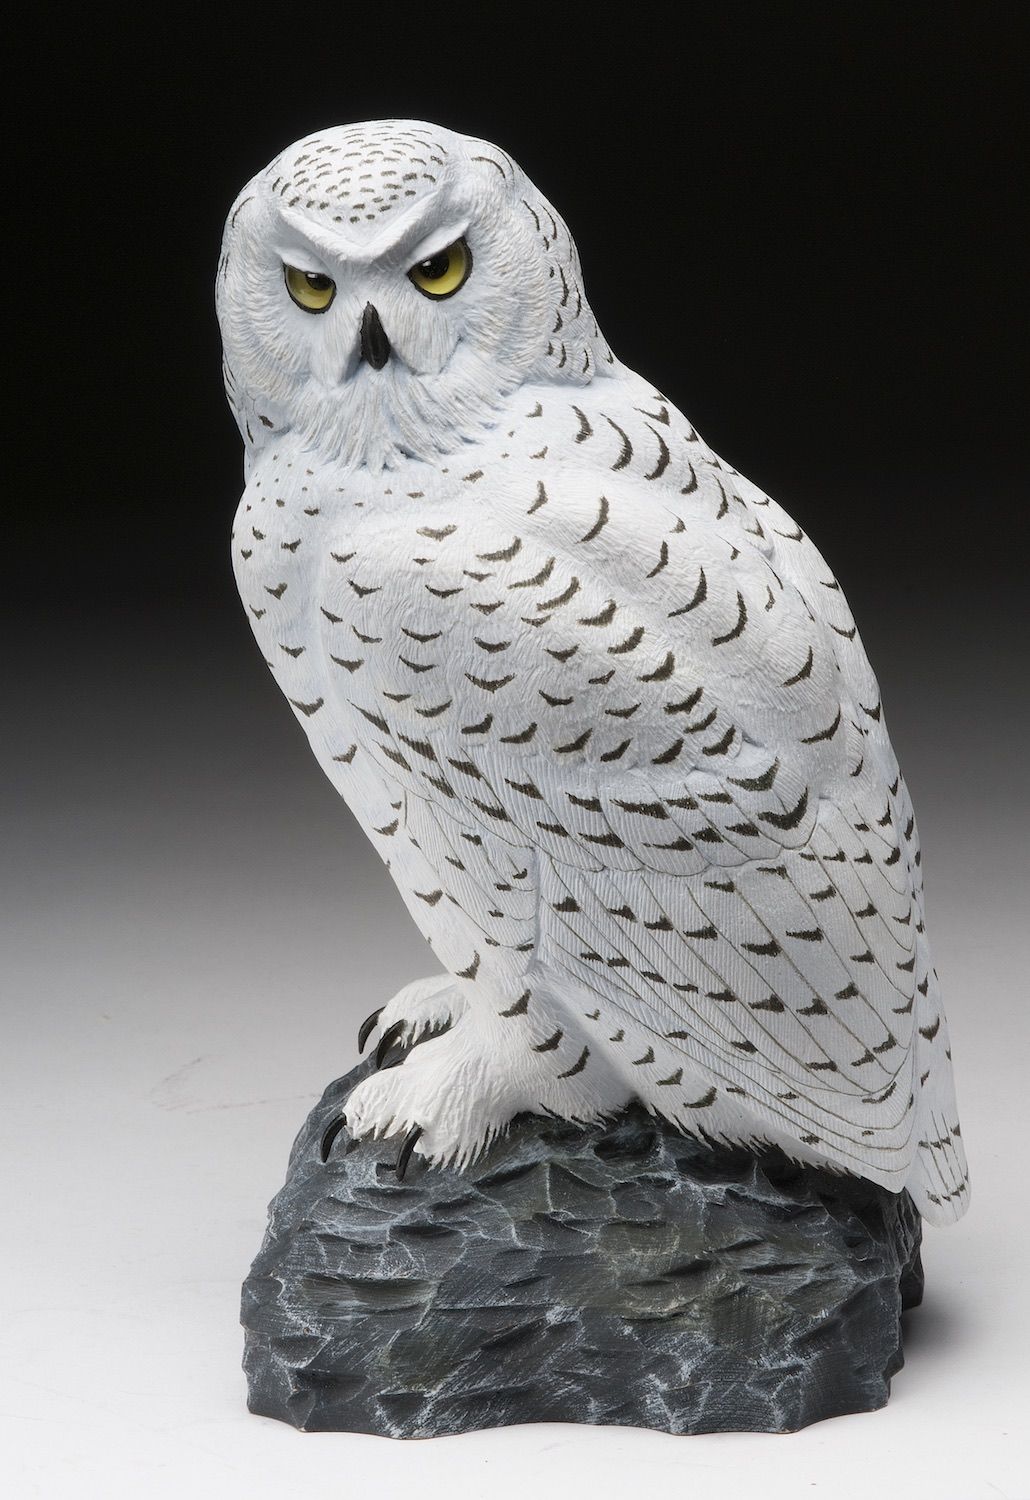 2018 Novice 1st Best of Show - Greg Apland - snowy owl